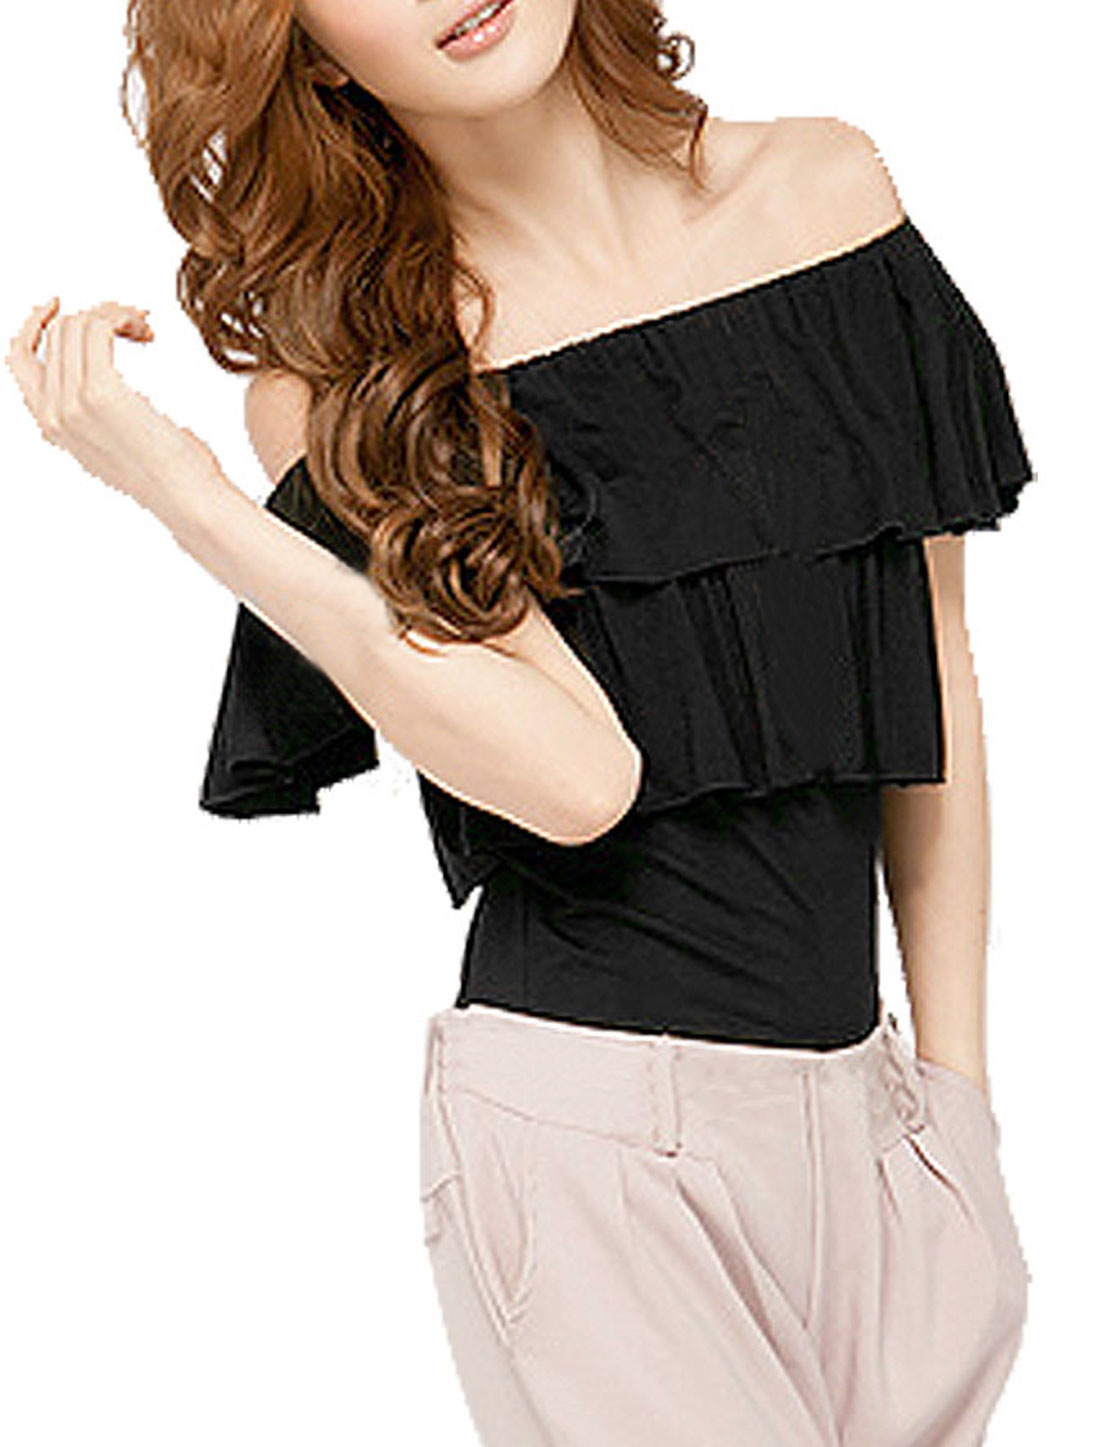 Black Ruffle Layers Elastic Boat Neck Cap Sleeve Shirt for Lady XS